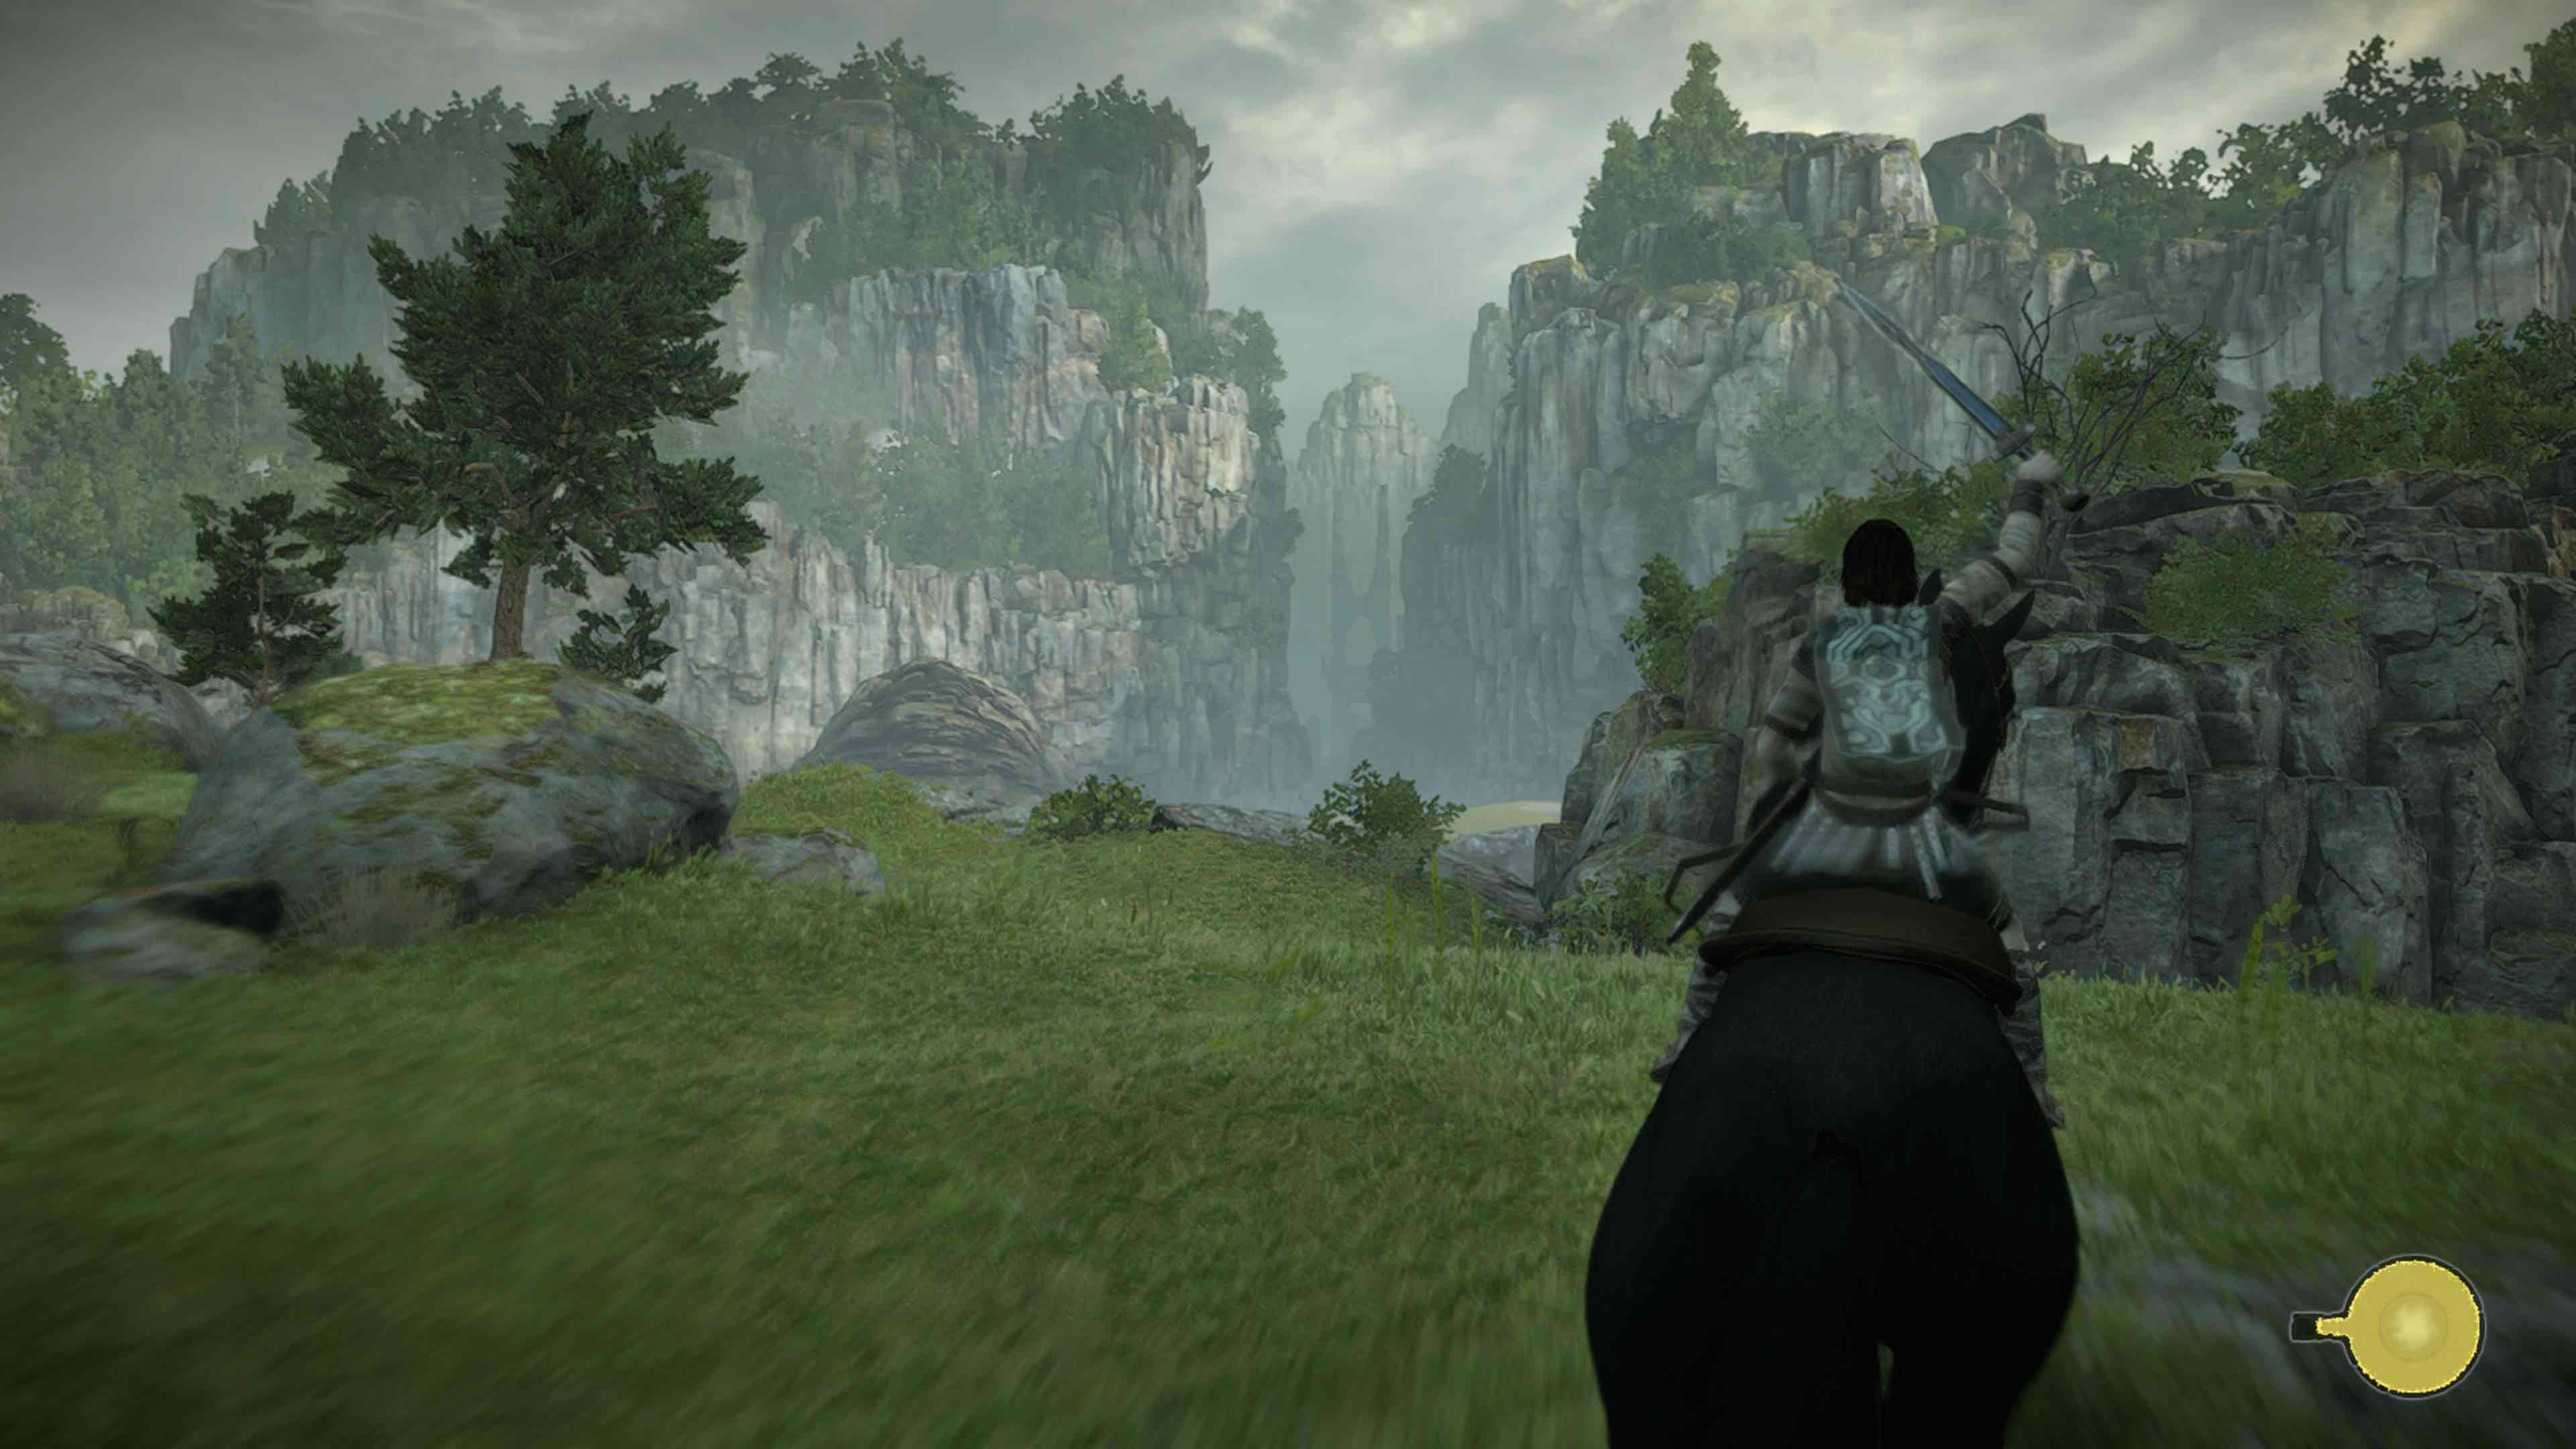 Shadow_of_the_Colossus_Coloso_5_1